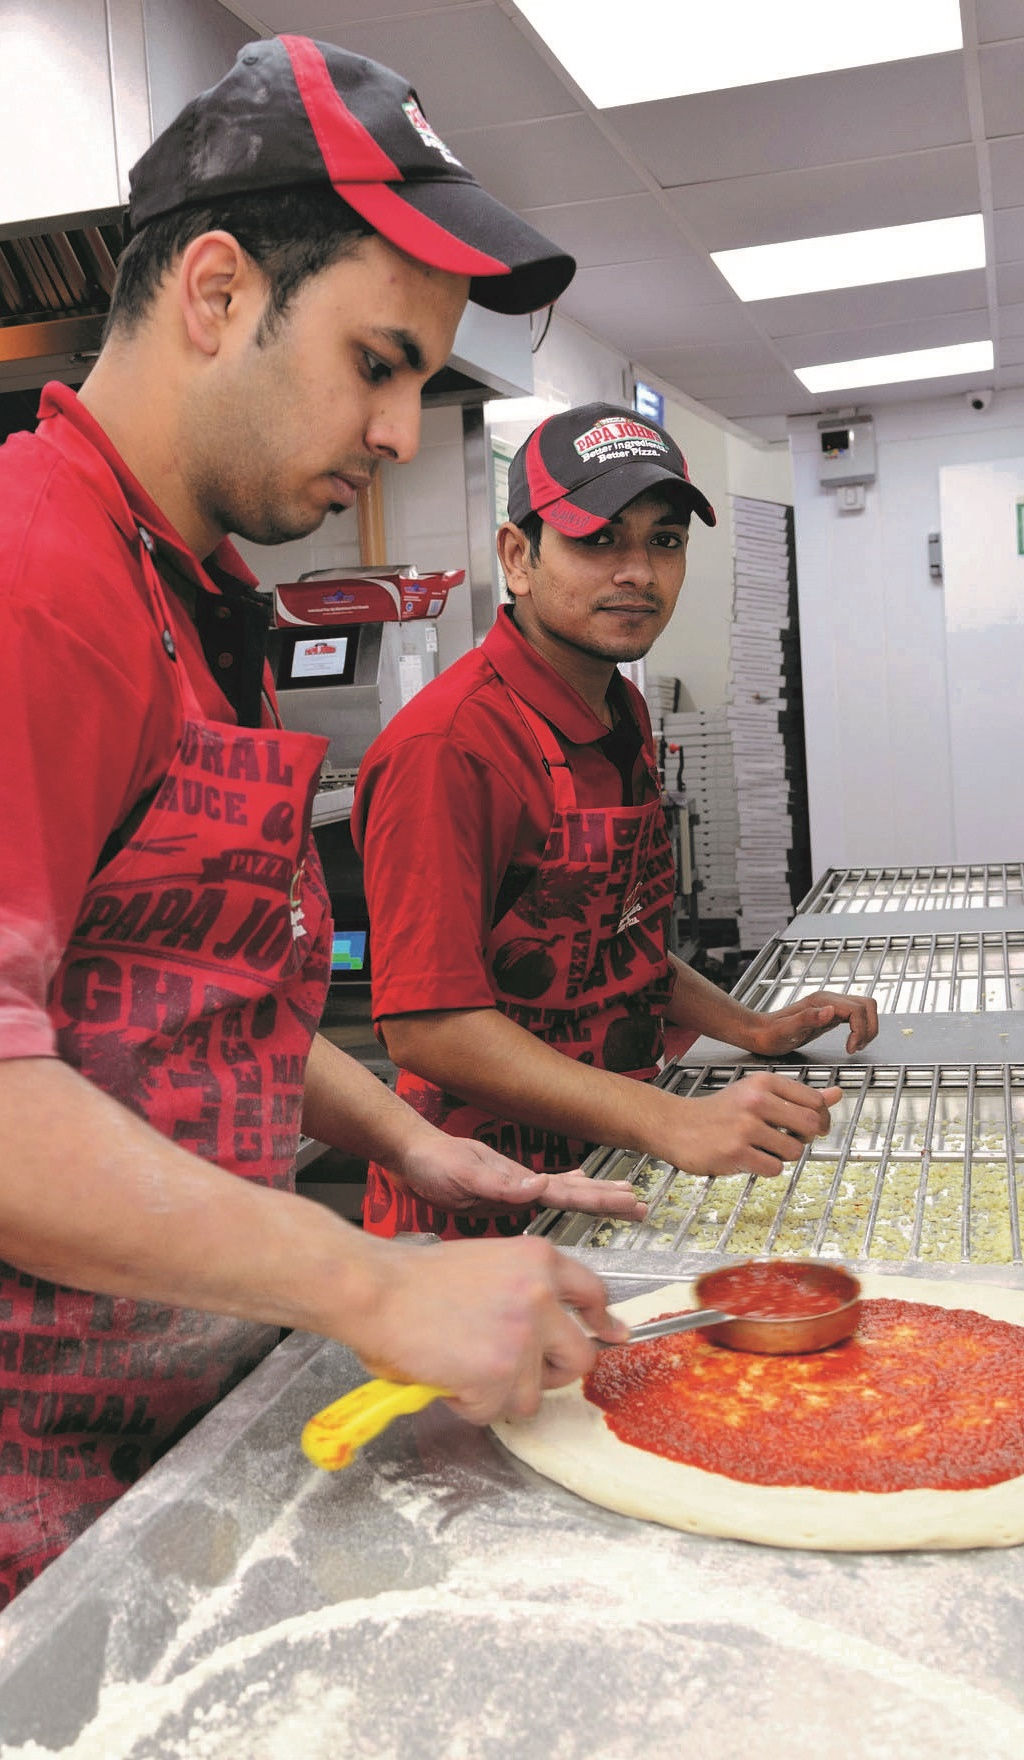 Papa John's Puts Pizza on the Menu in Putney